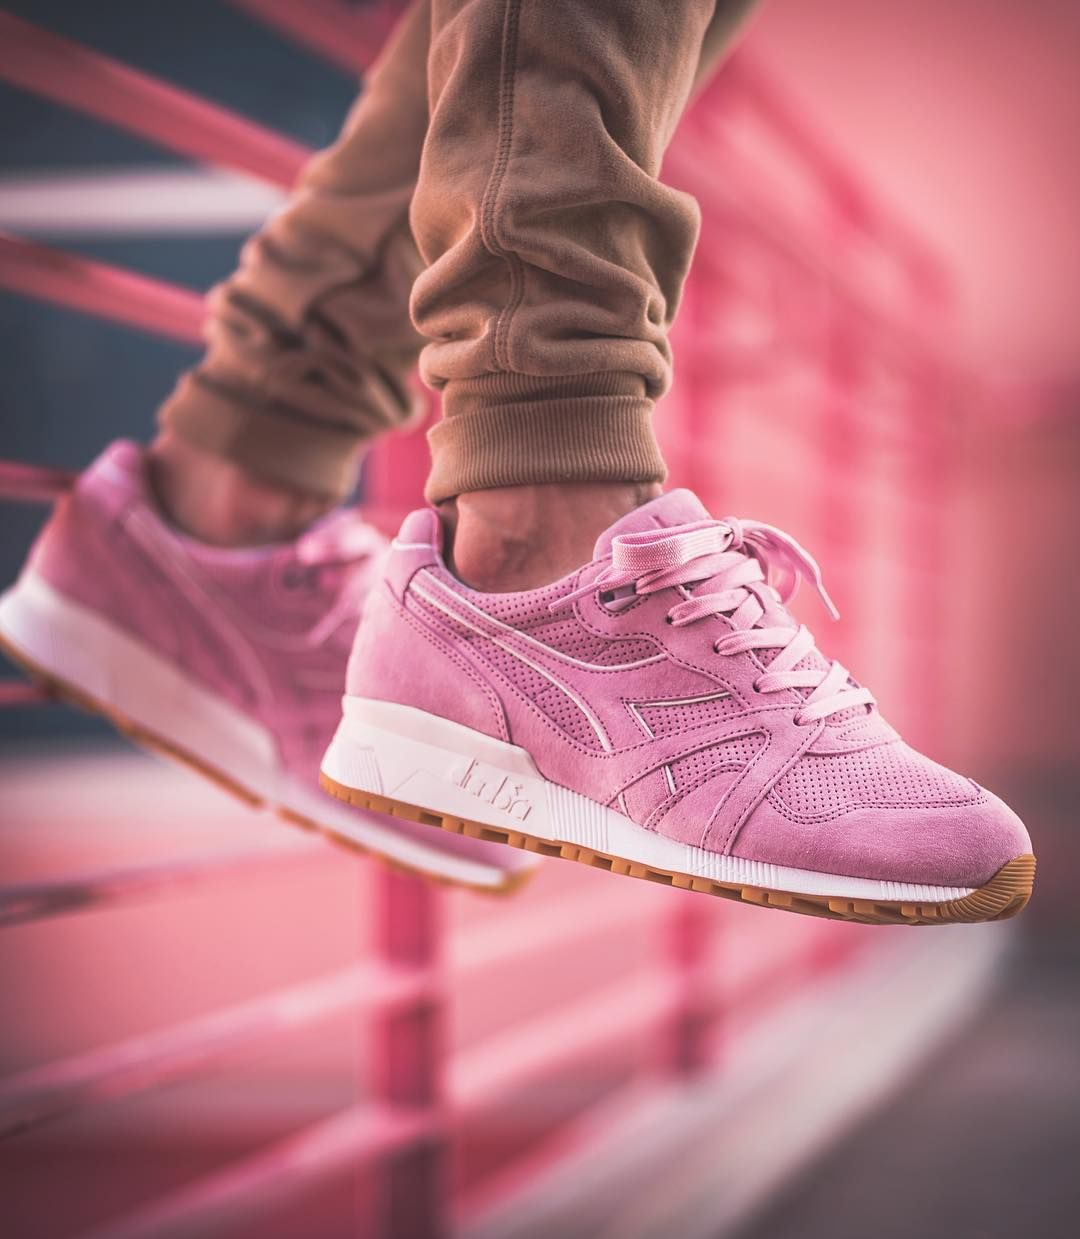 ASICS GEL LYTE III Scorpion Pack Shine's Sport